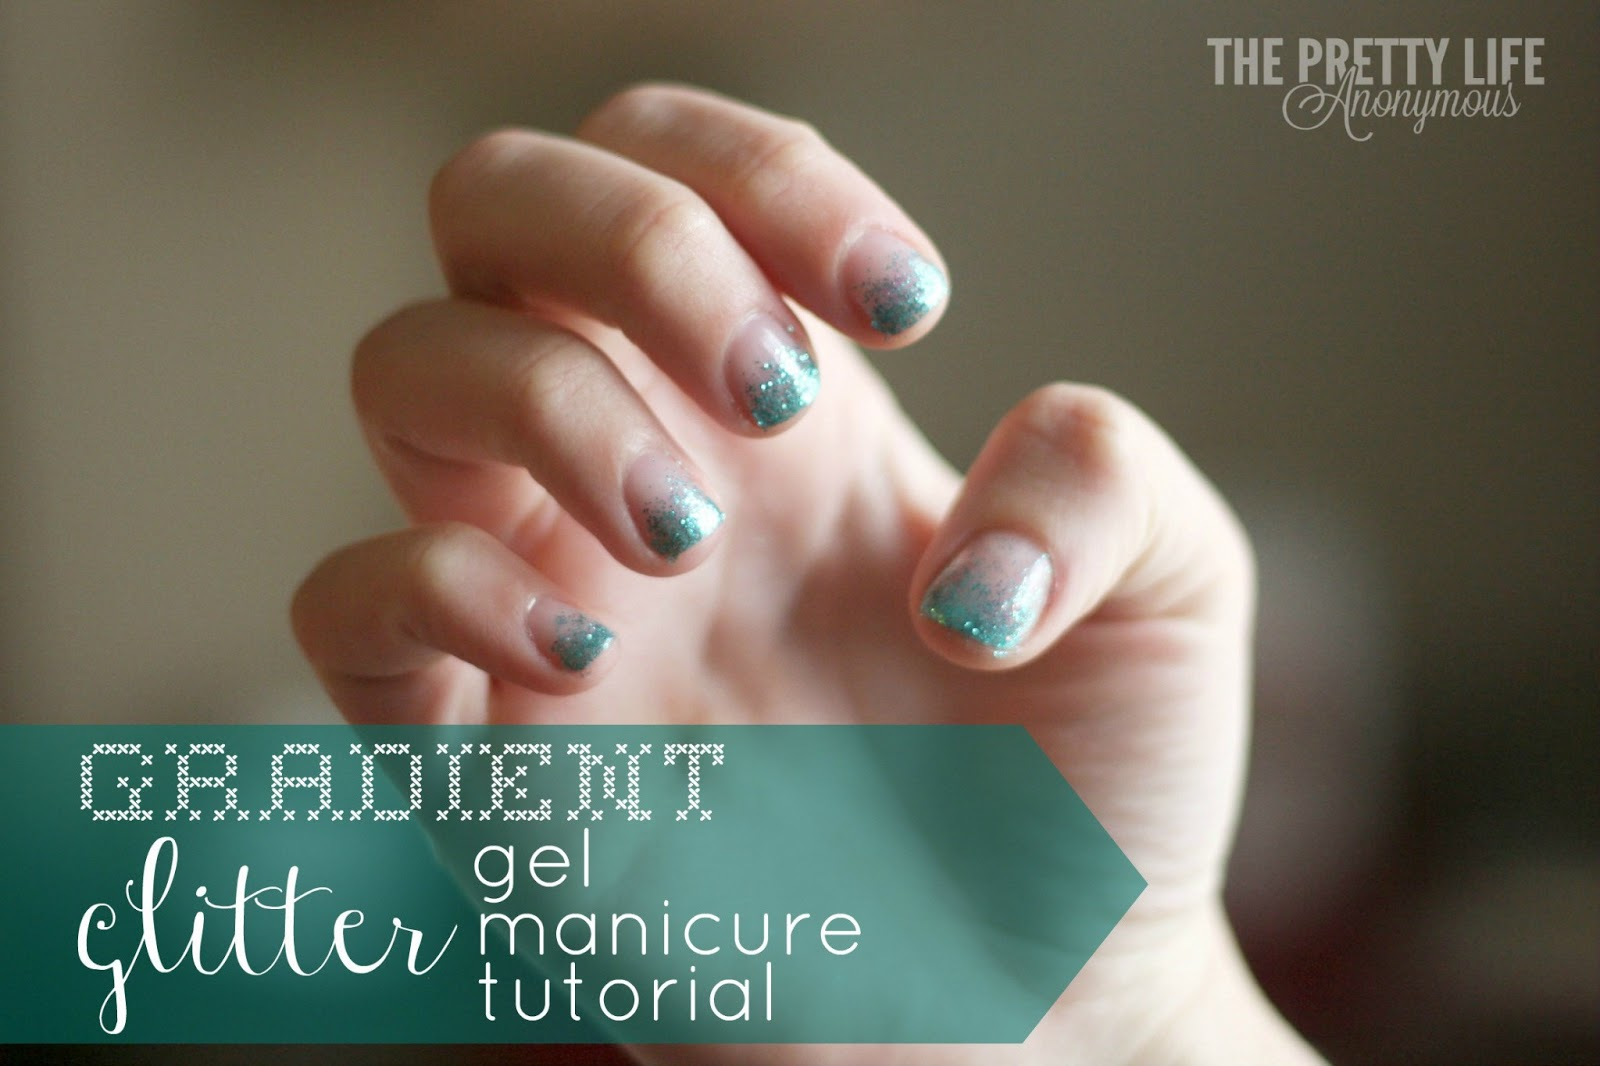 gel nails and glitter tutorial photo - 1